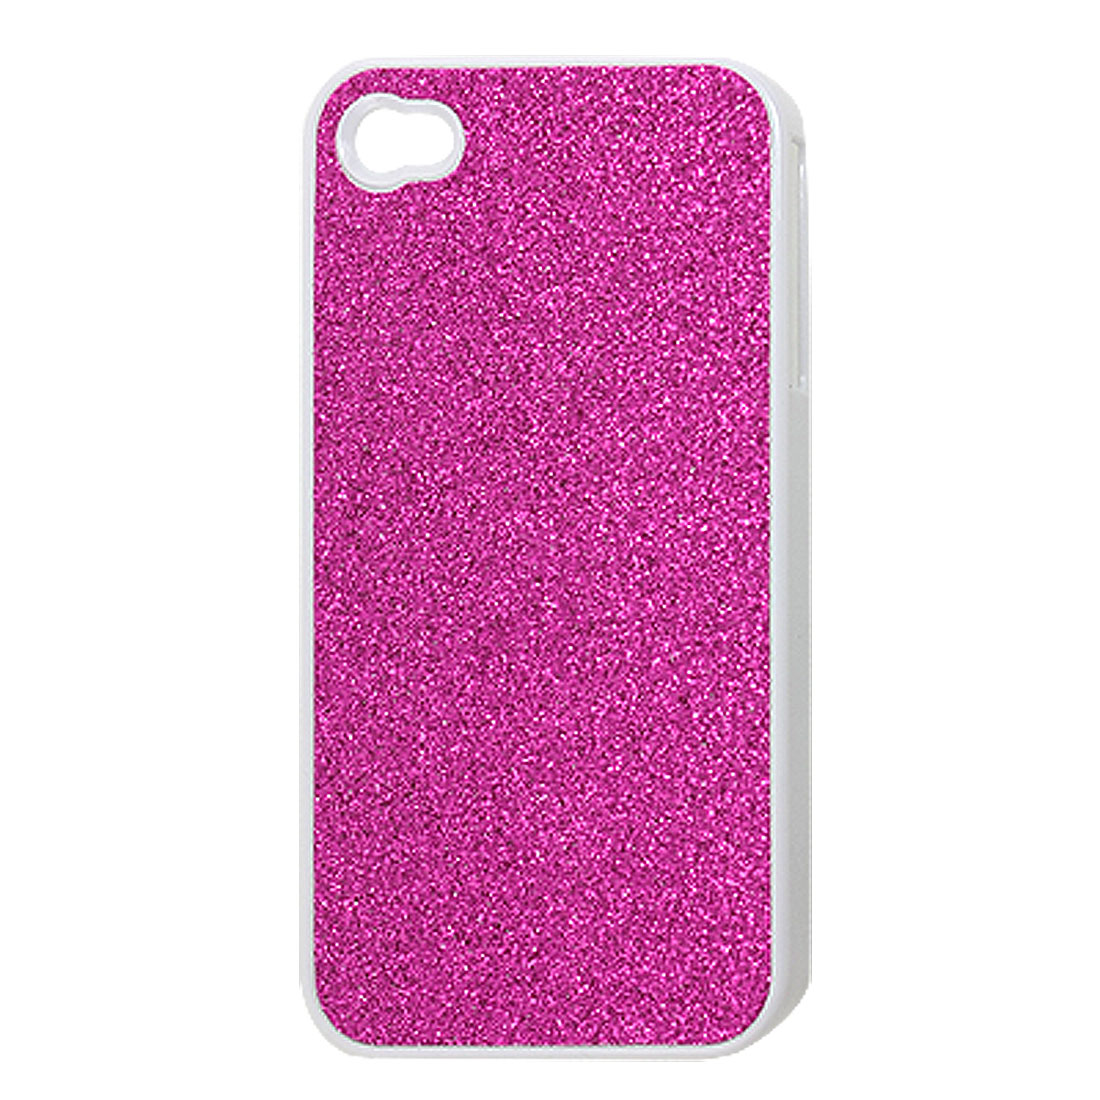 Fuchsia Powdered Faux Leather Coated Plastic Back Cover for iPhone 4 4G 4S